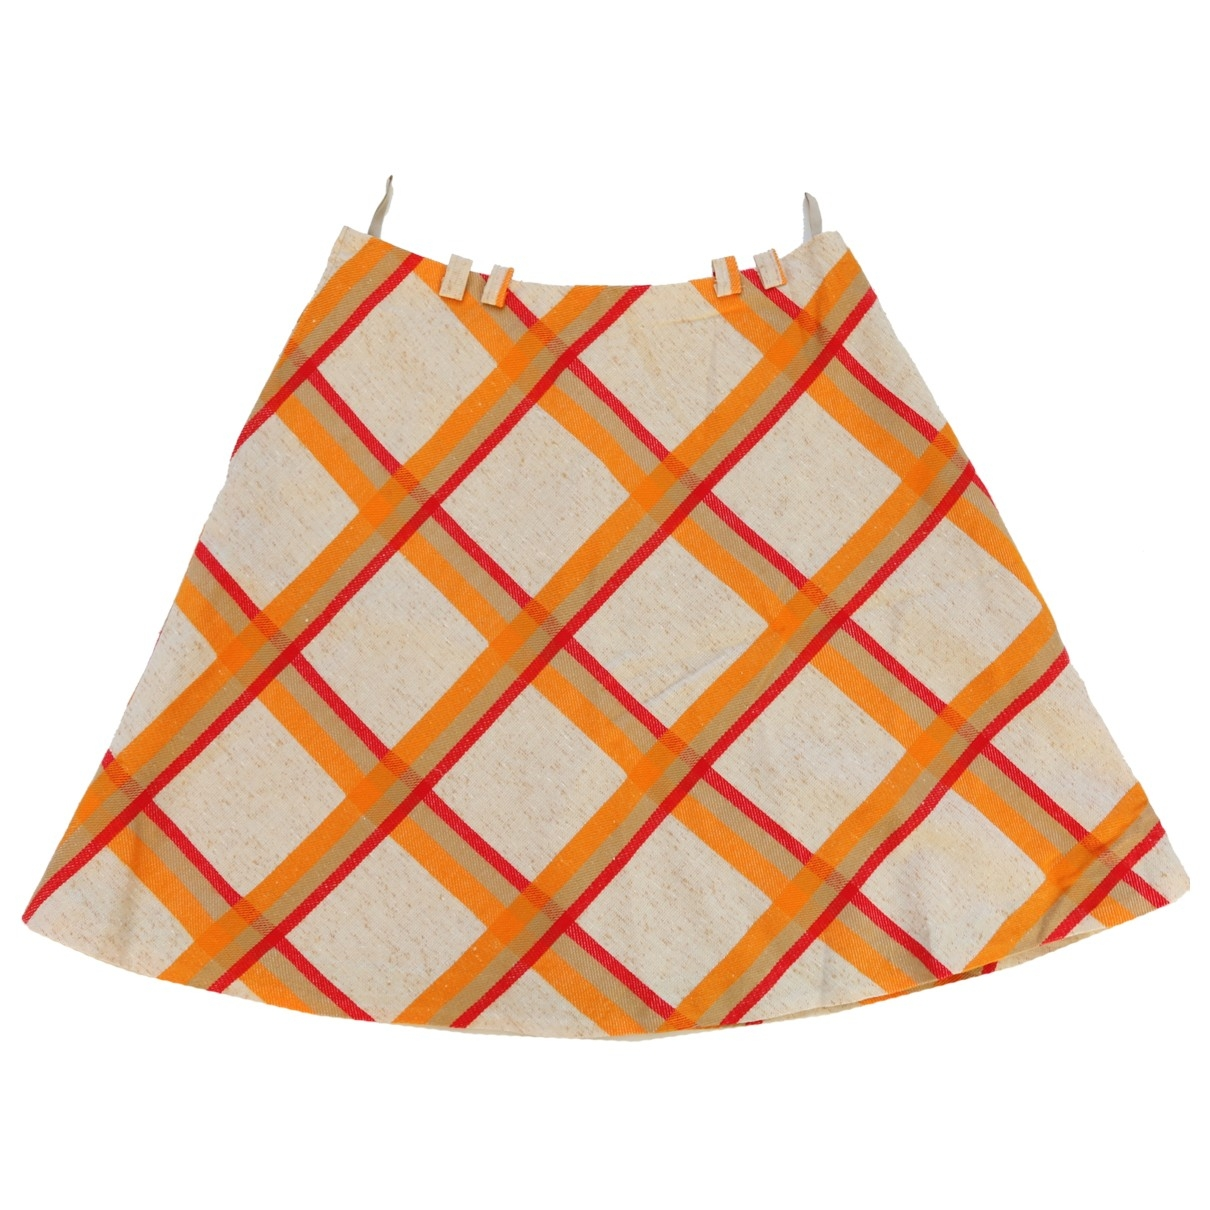 Non Signé / Unsigned Hippie Chic Orange skirt for Women One Size International